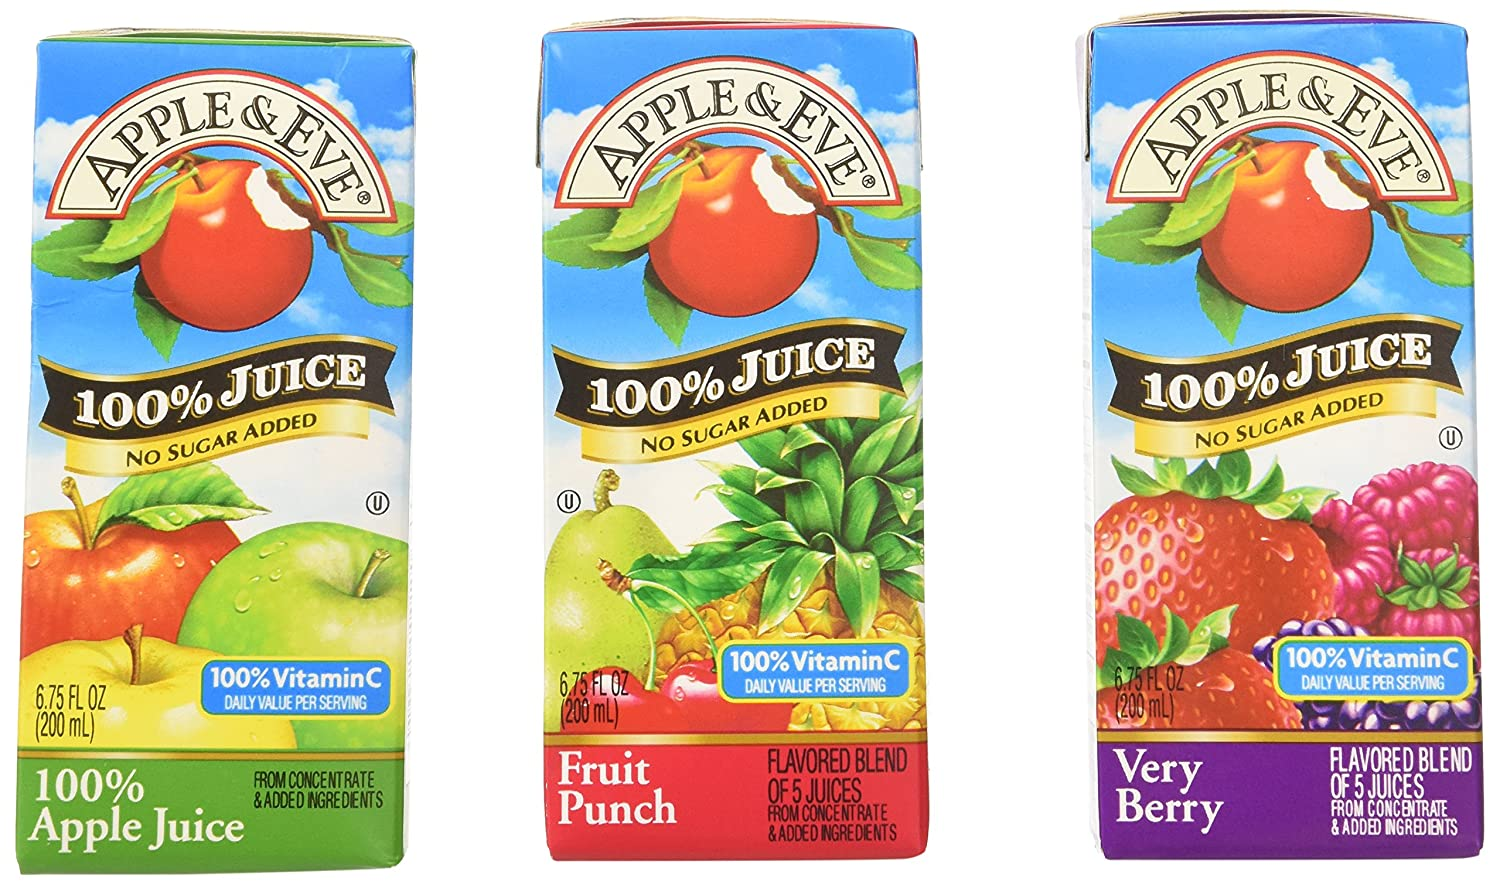 Apple & Eve 100% Juice Variety Pack, (36) Count, 6.75 Oz Boxes